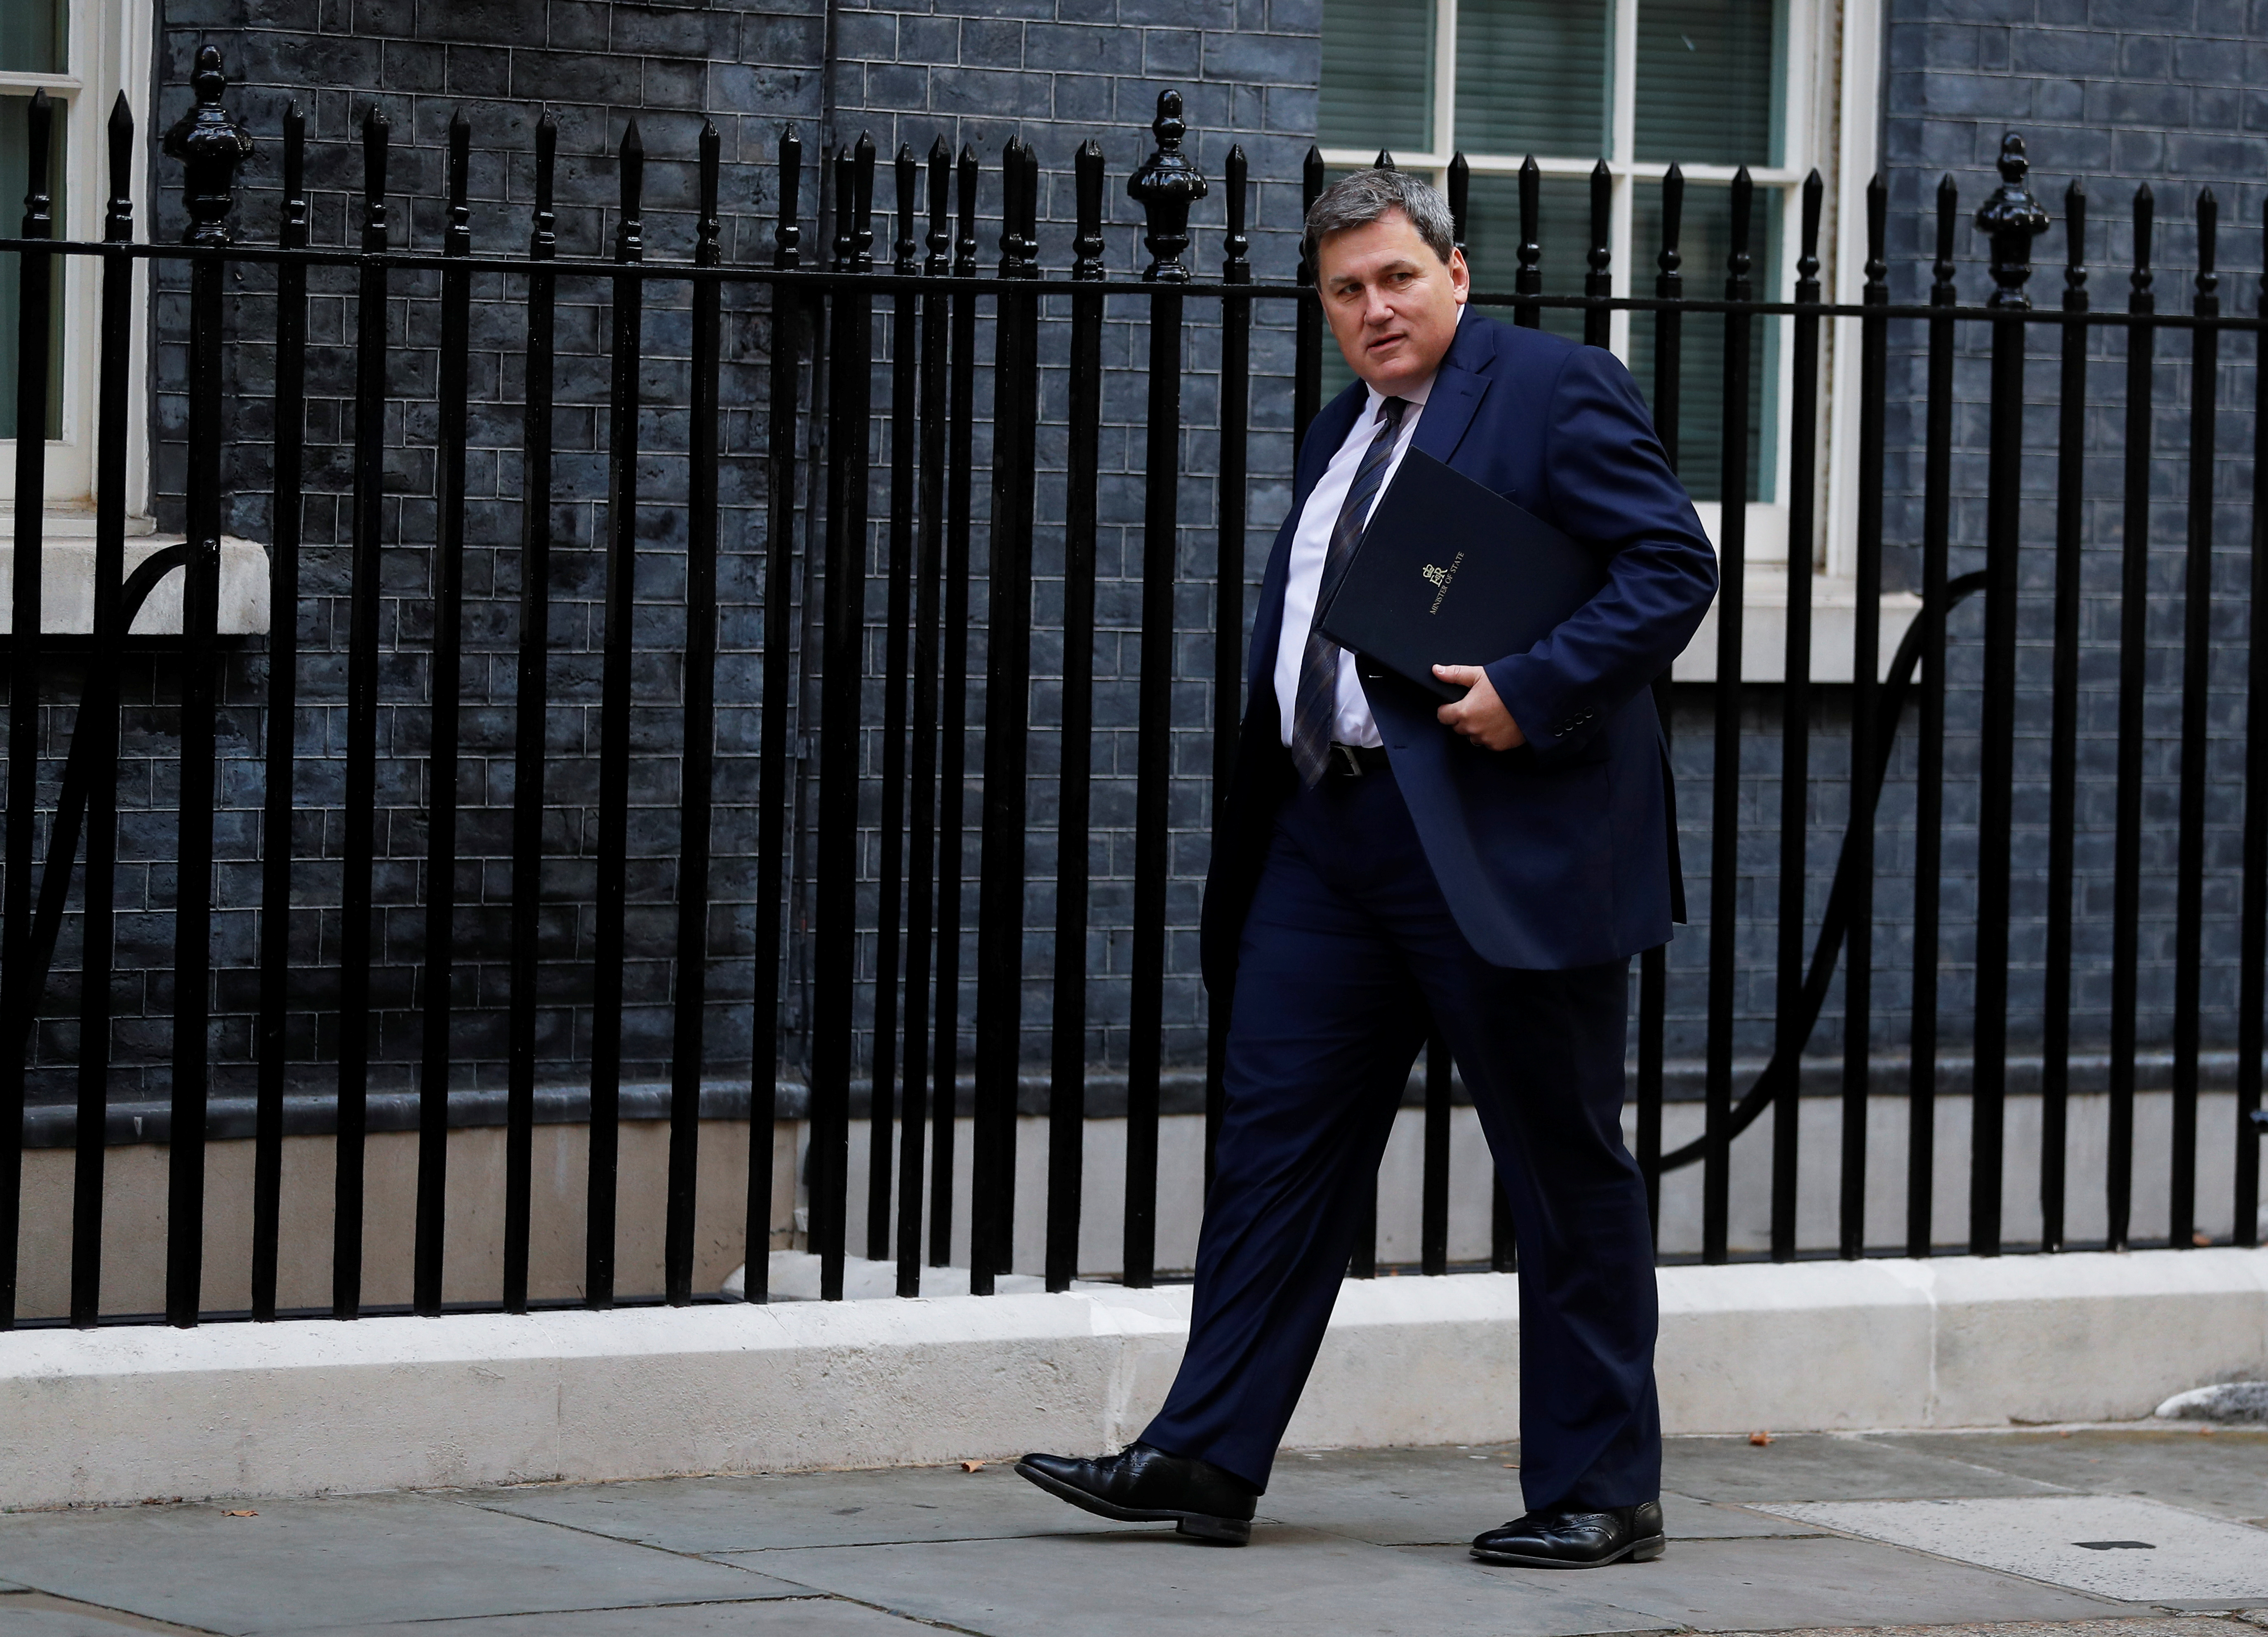 Britain's Minister of State at the Home Office Kit Malthouse arrives on Downing Street, in London, Britain September 17, 2021. REUTERS/Peter Nicholls